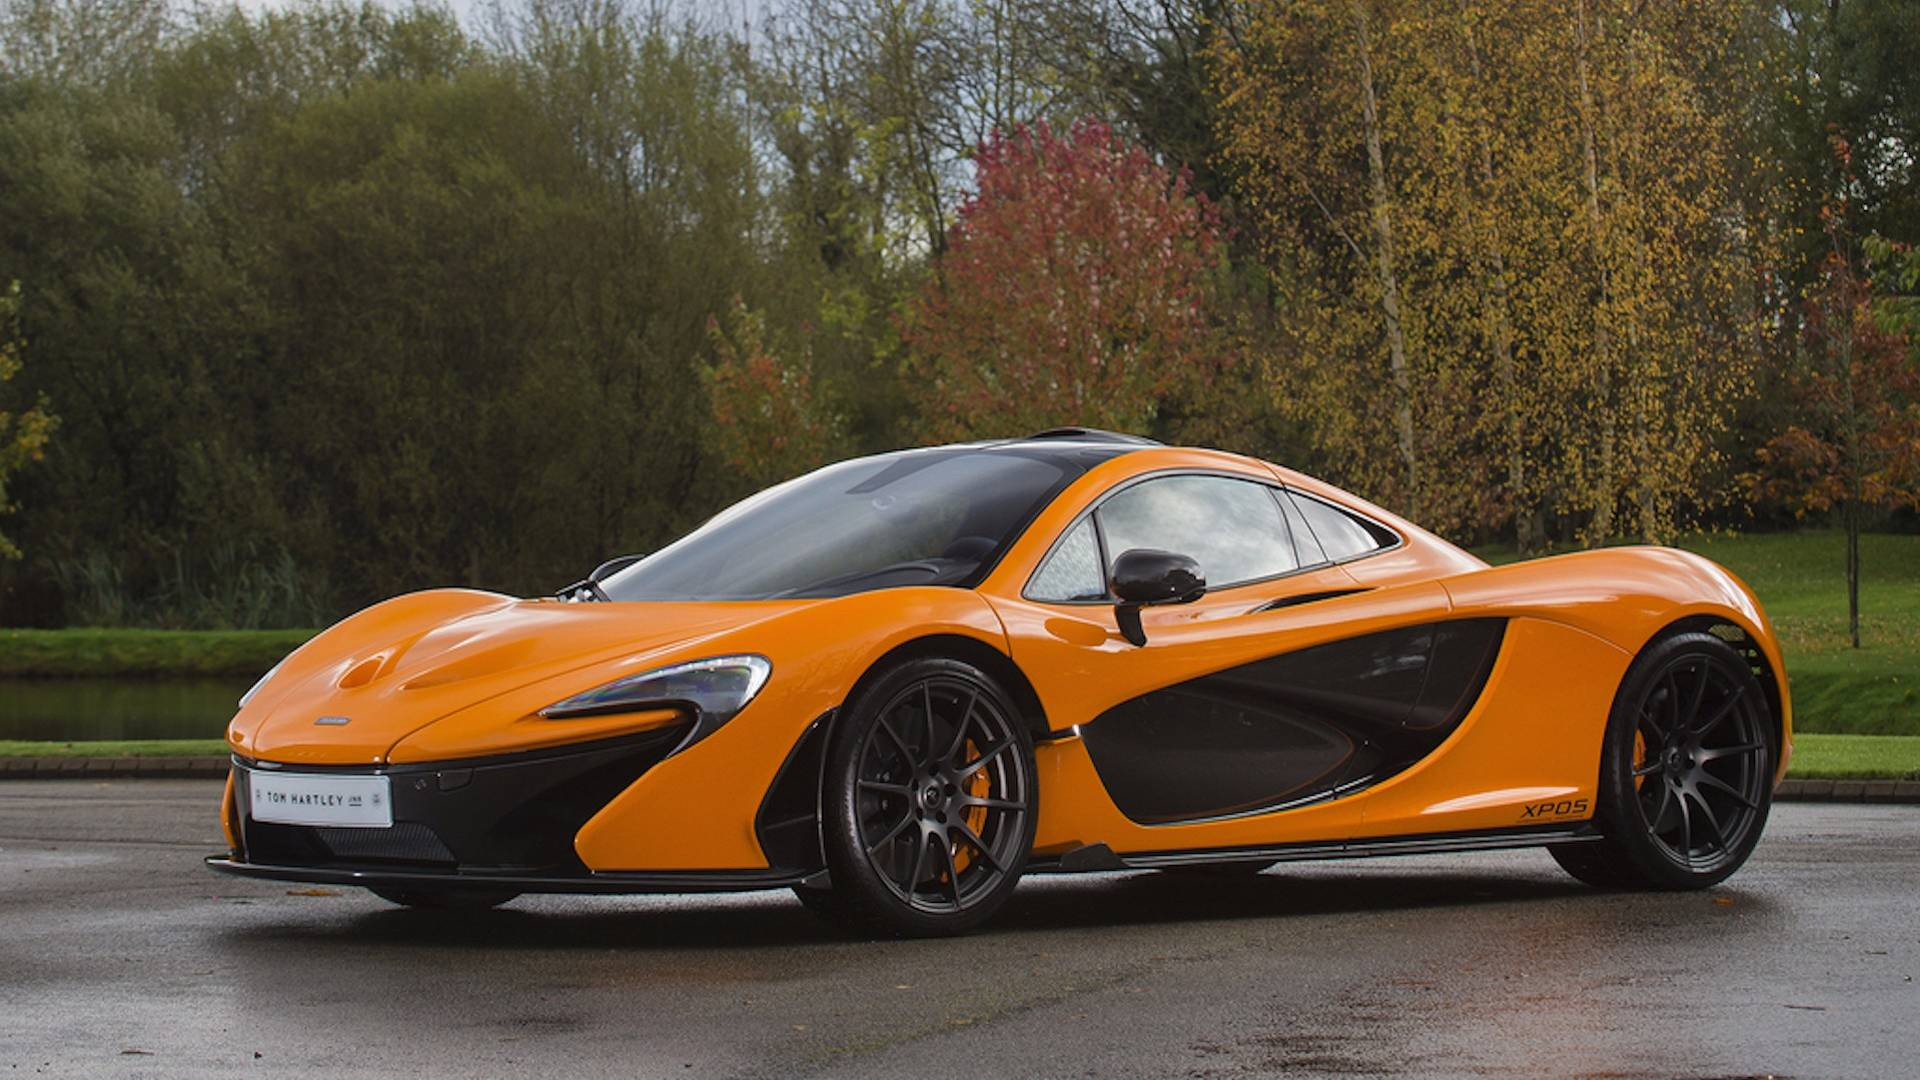 Rare McLaren P1 Experimental Prototype Up For Grabs